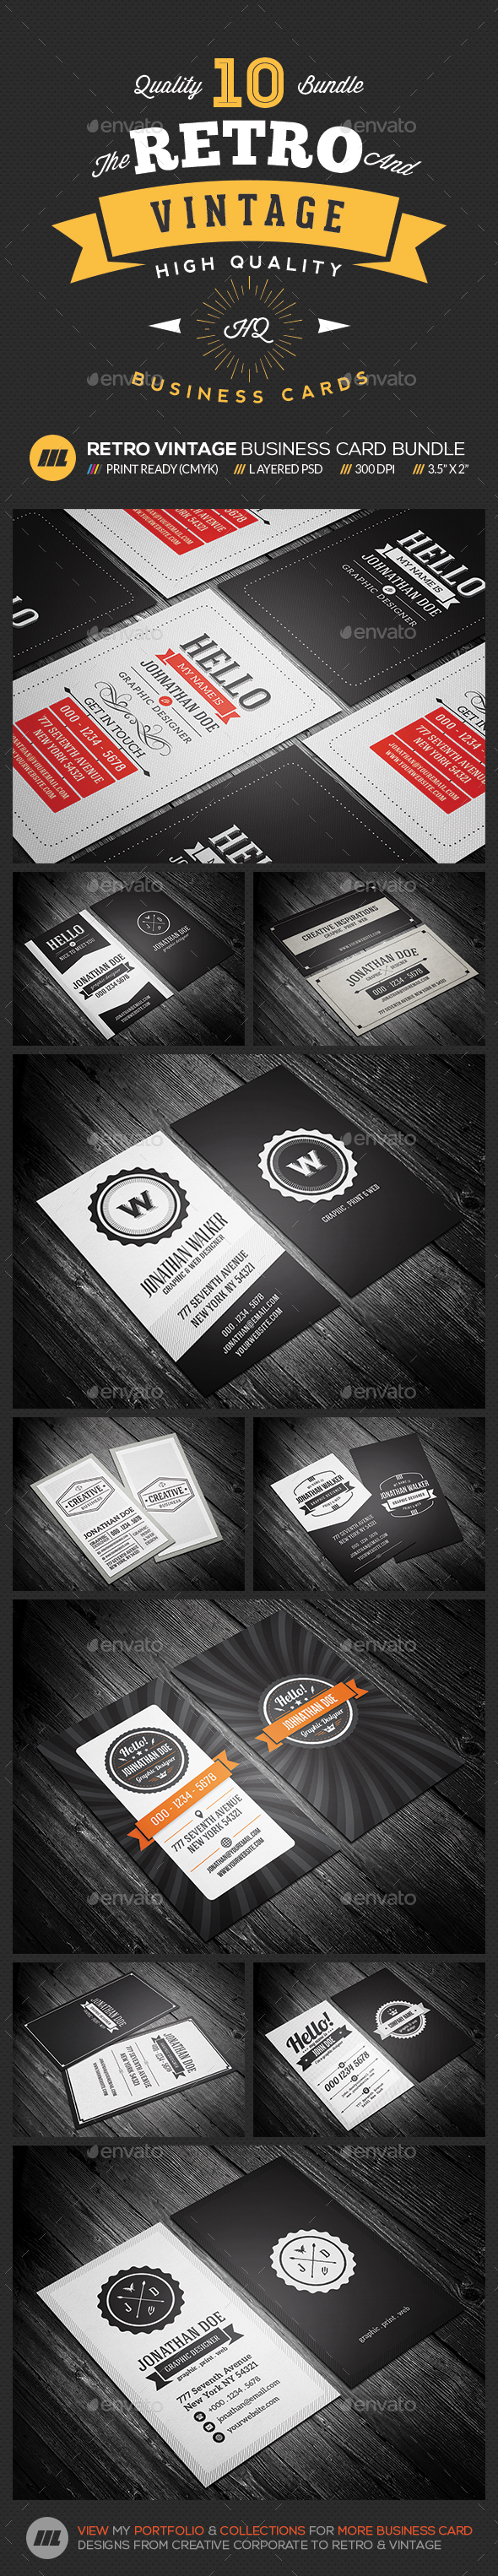 Awesome 1 Inch Button Template Thin 1 Week Calendar Template Rectangular 1099 Contract Template 1300 Resume Government Samples Selection Criteria Old 185 Powerful Resume Verbs Orange1st Job Resume Template Vintage Business Card Templates \u0026 Designs From GraphicRiver